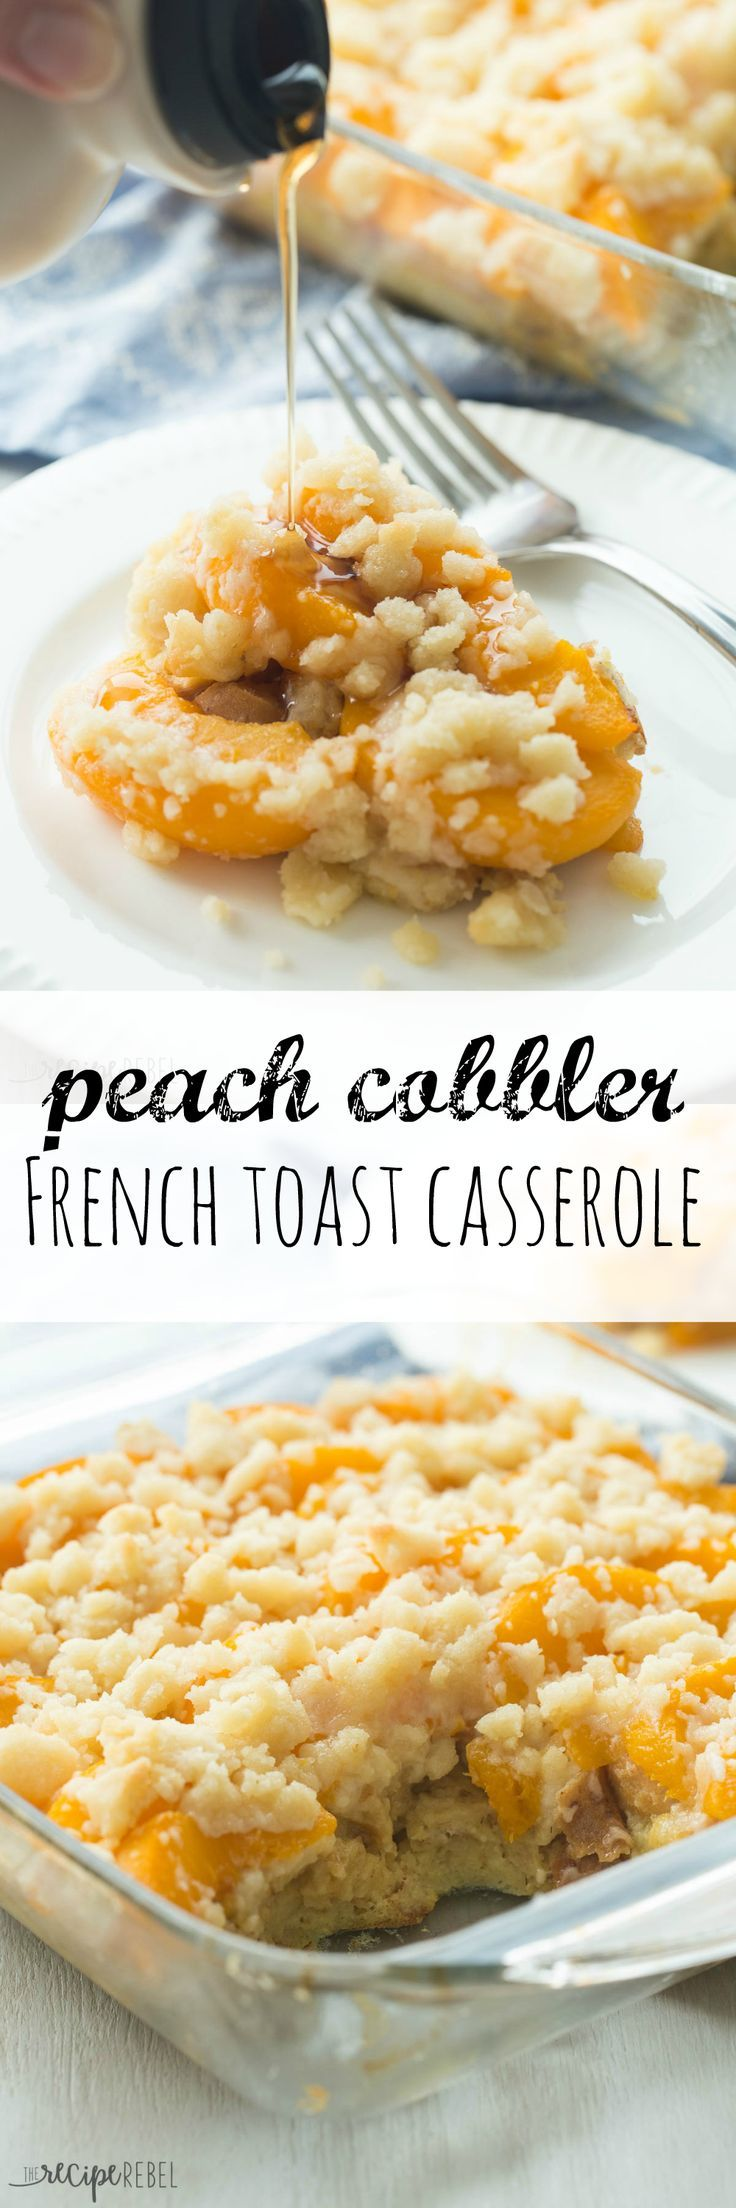 An Easy Overnight French Toast Casserole Topped With Peach Cobbler €� The  Best French Toast I